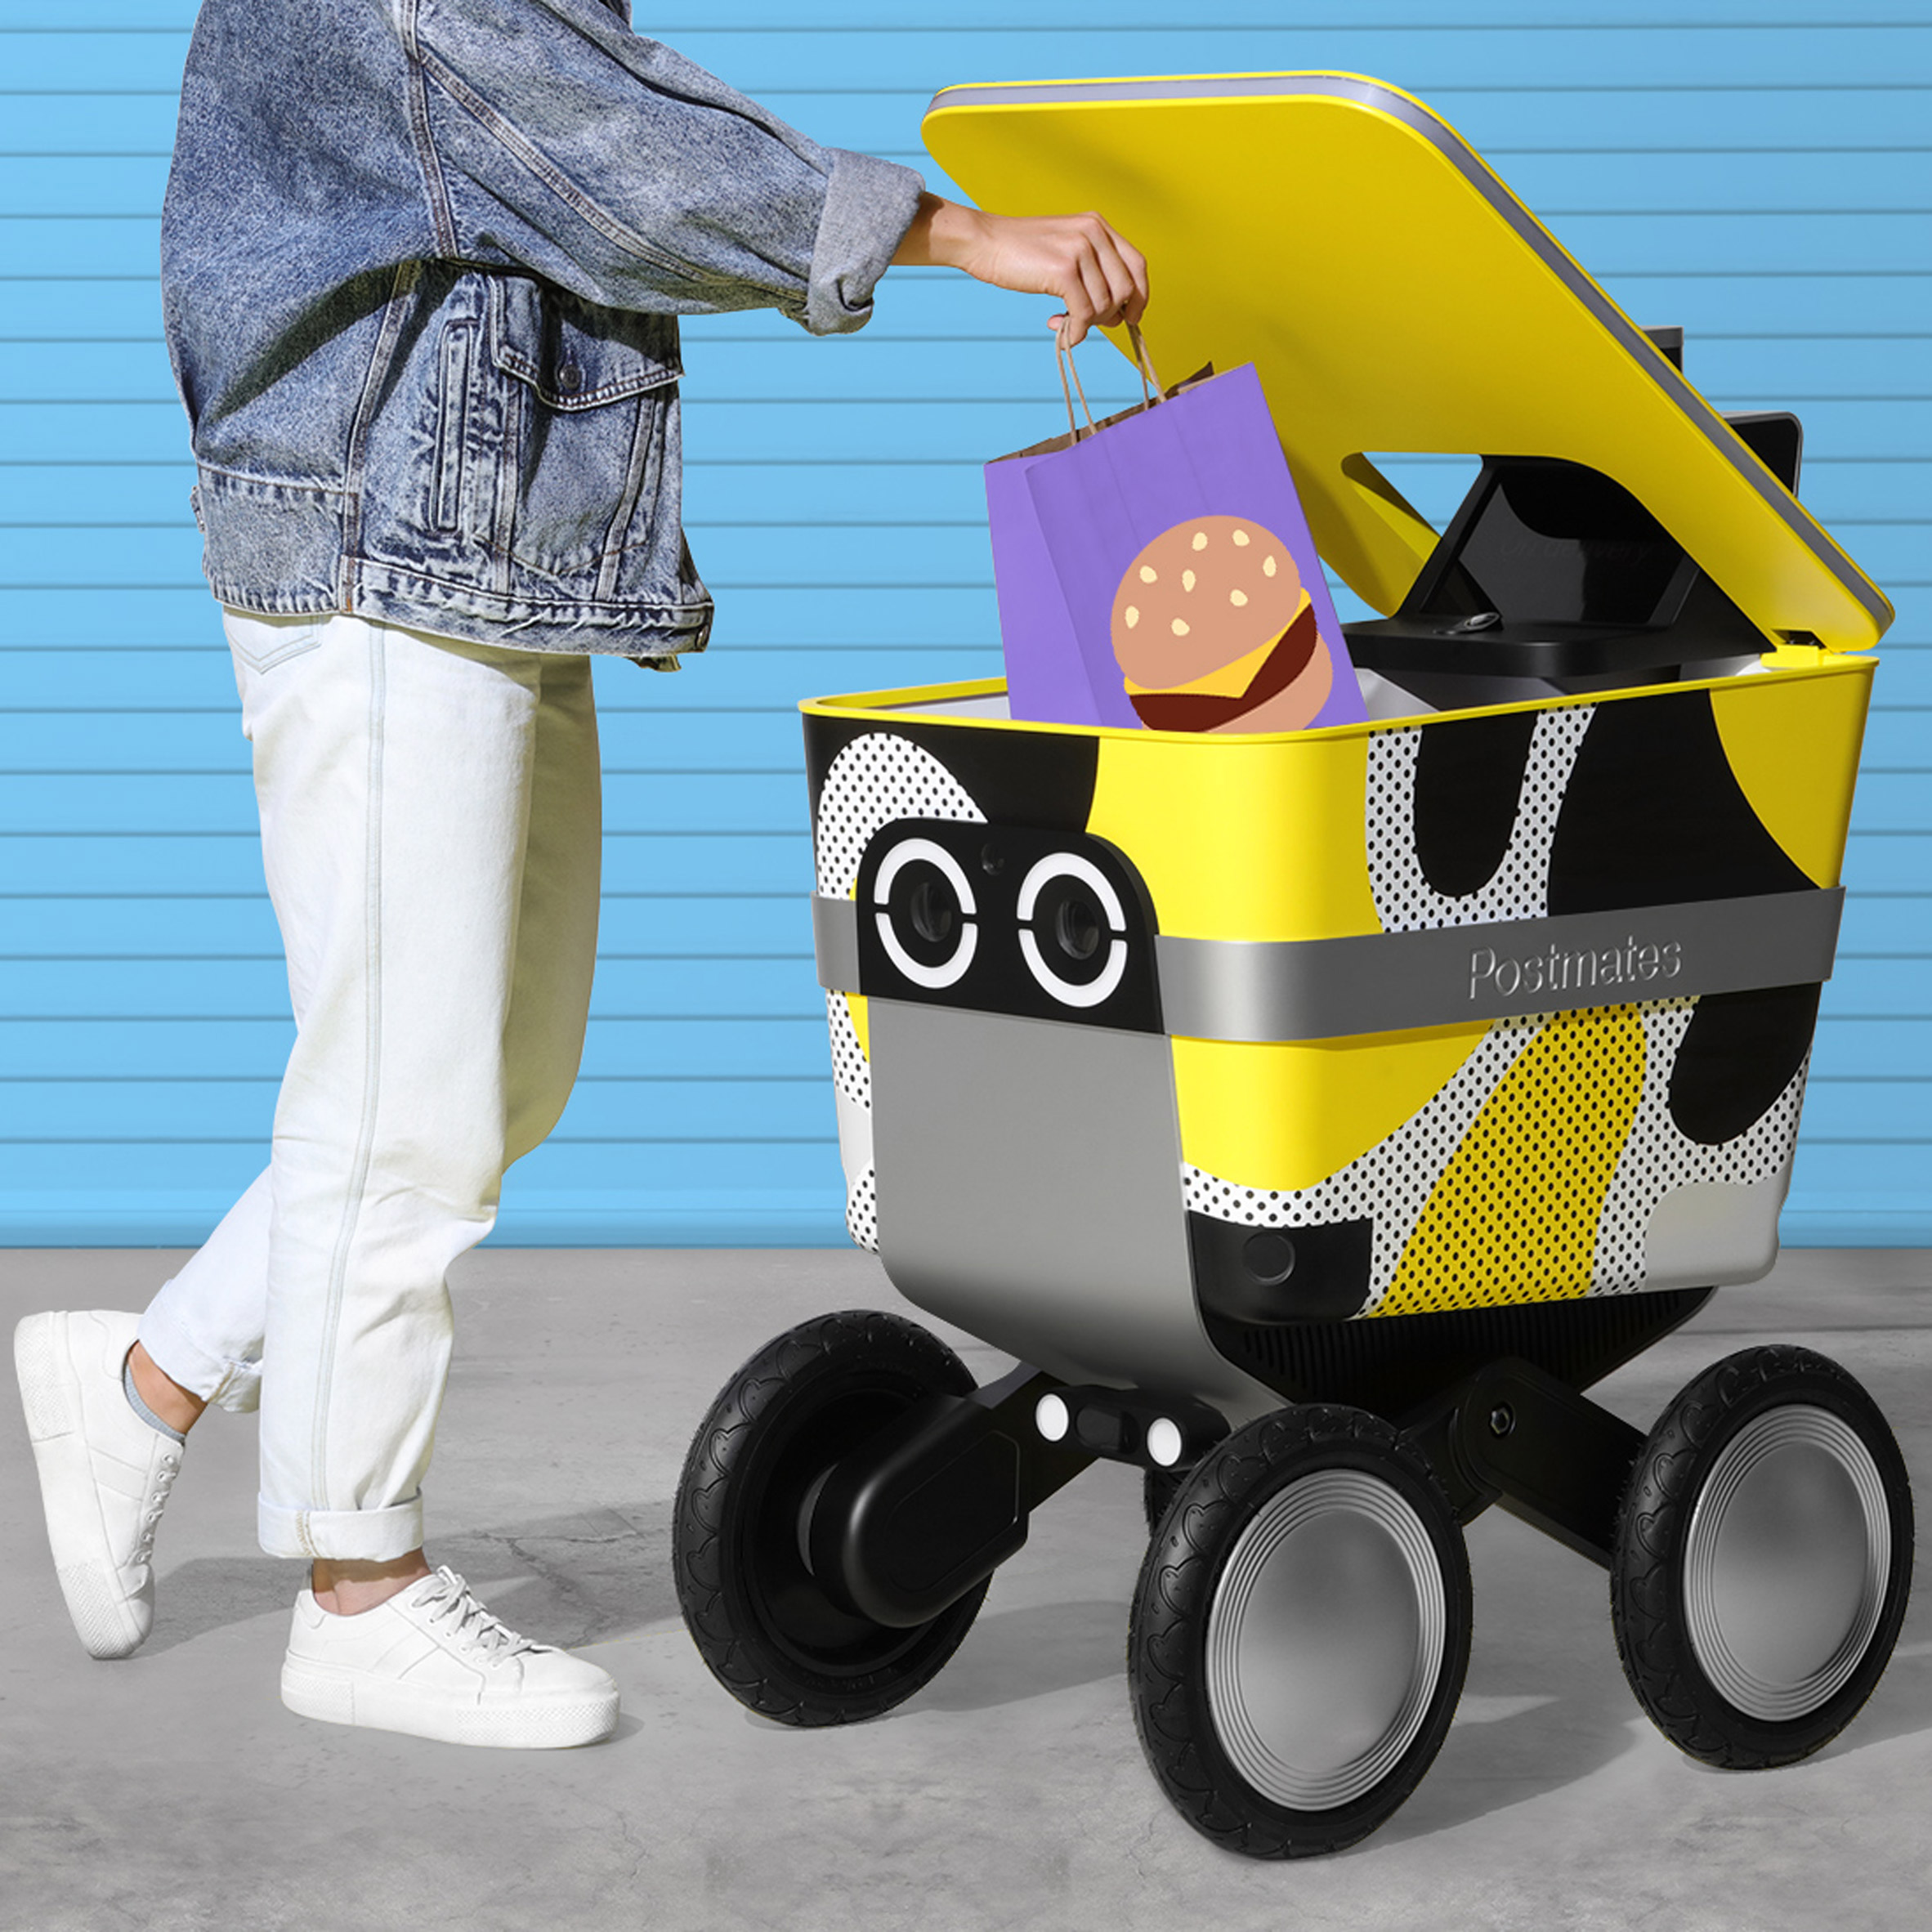 Postmates' delivery robot Serve created by New Deal Design to be lovable